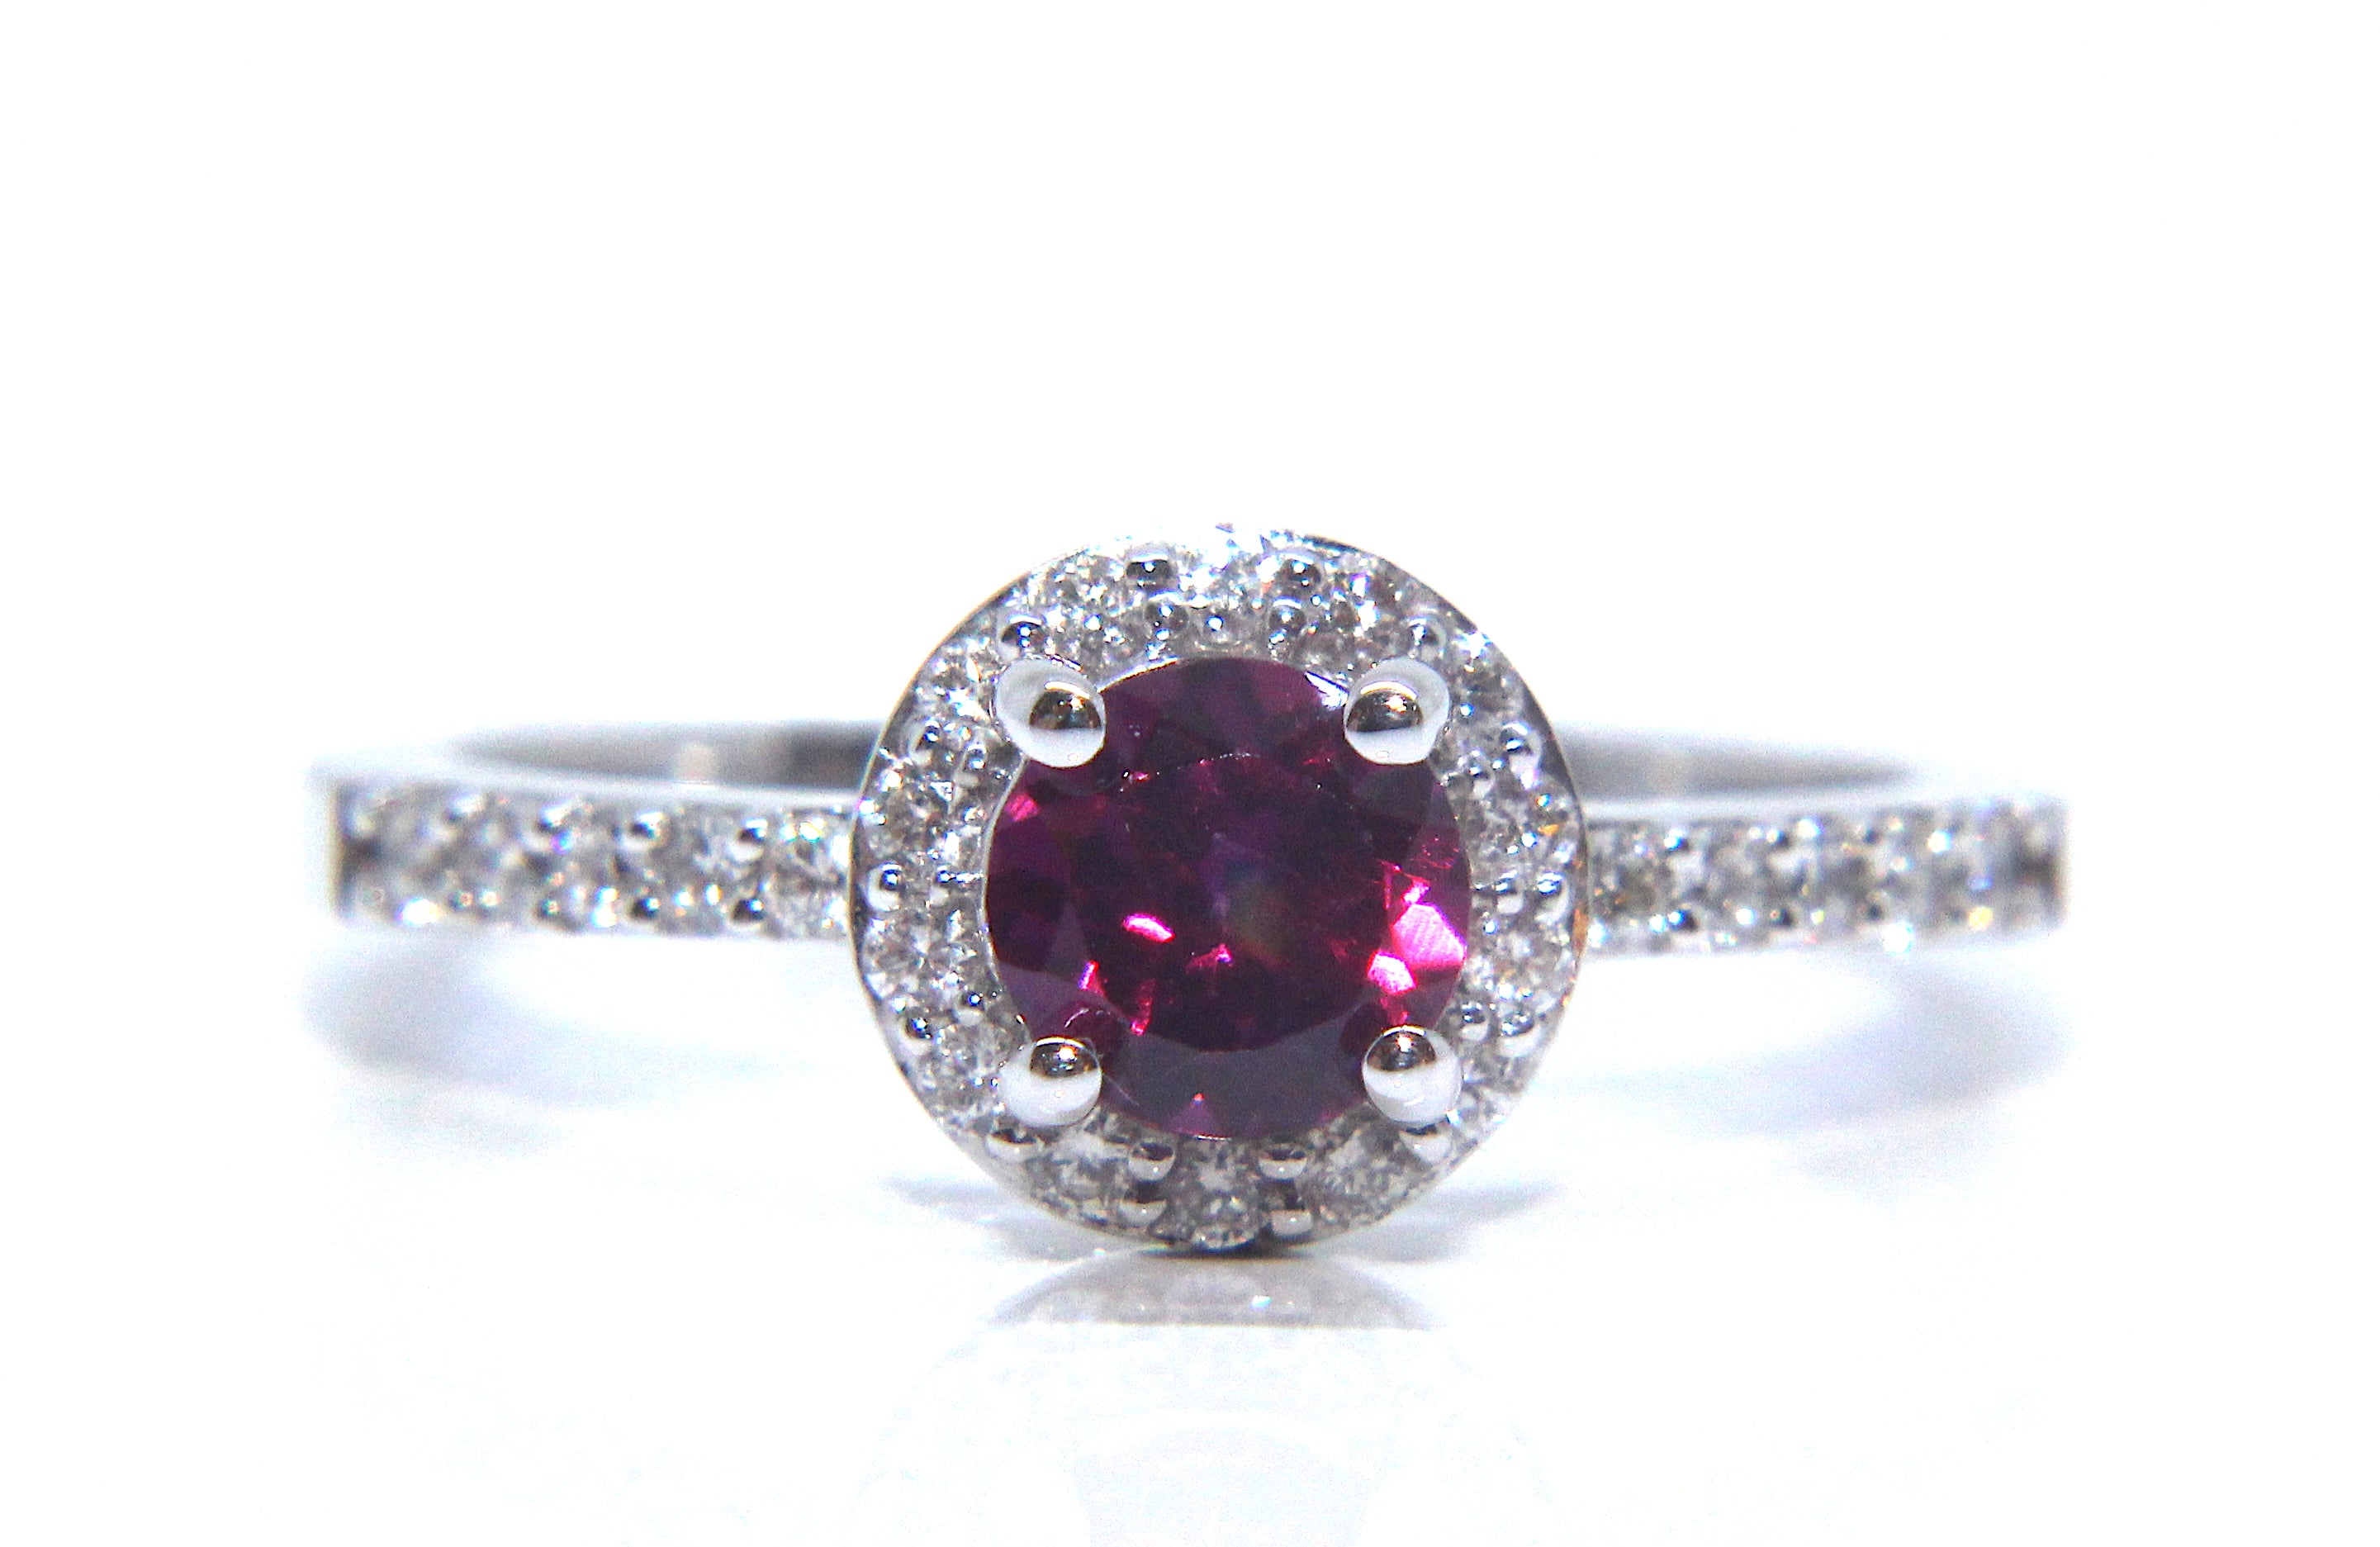 fete rings chaumet jewellery rhodolite aria the une shop upscale te garnet passionata crop scale false img product edited engagement est ring high f subsampling